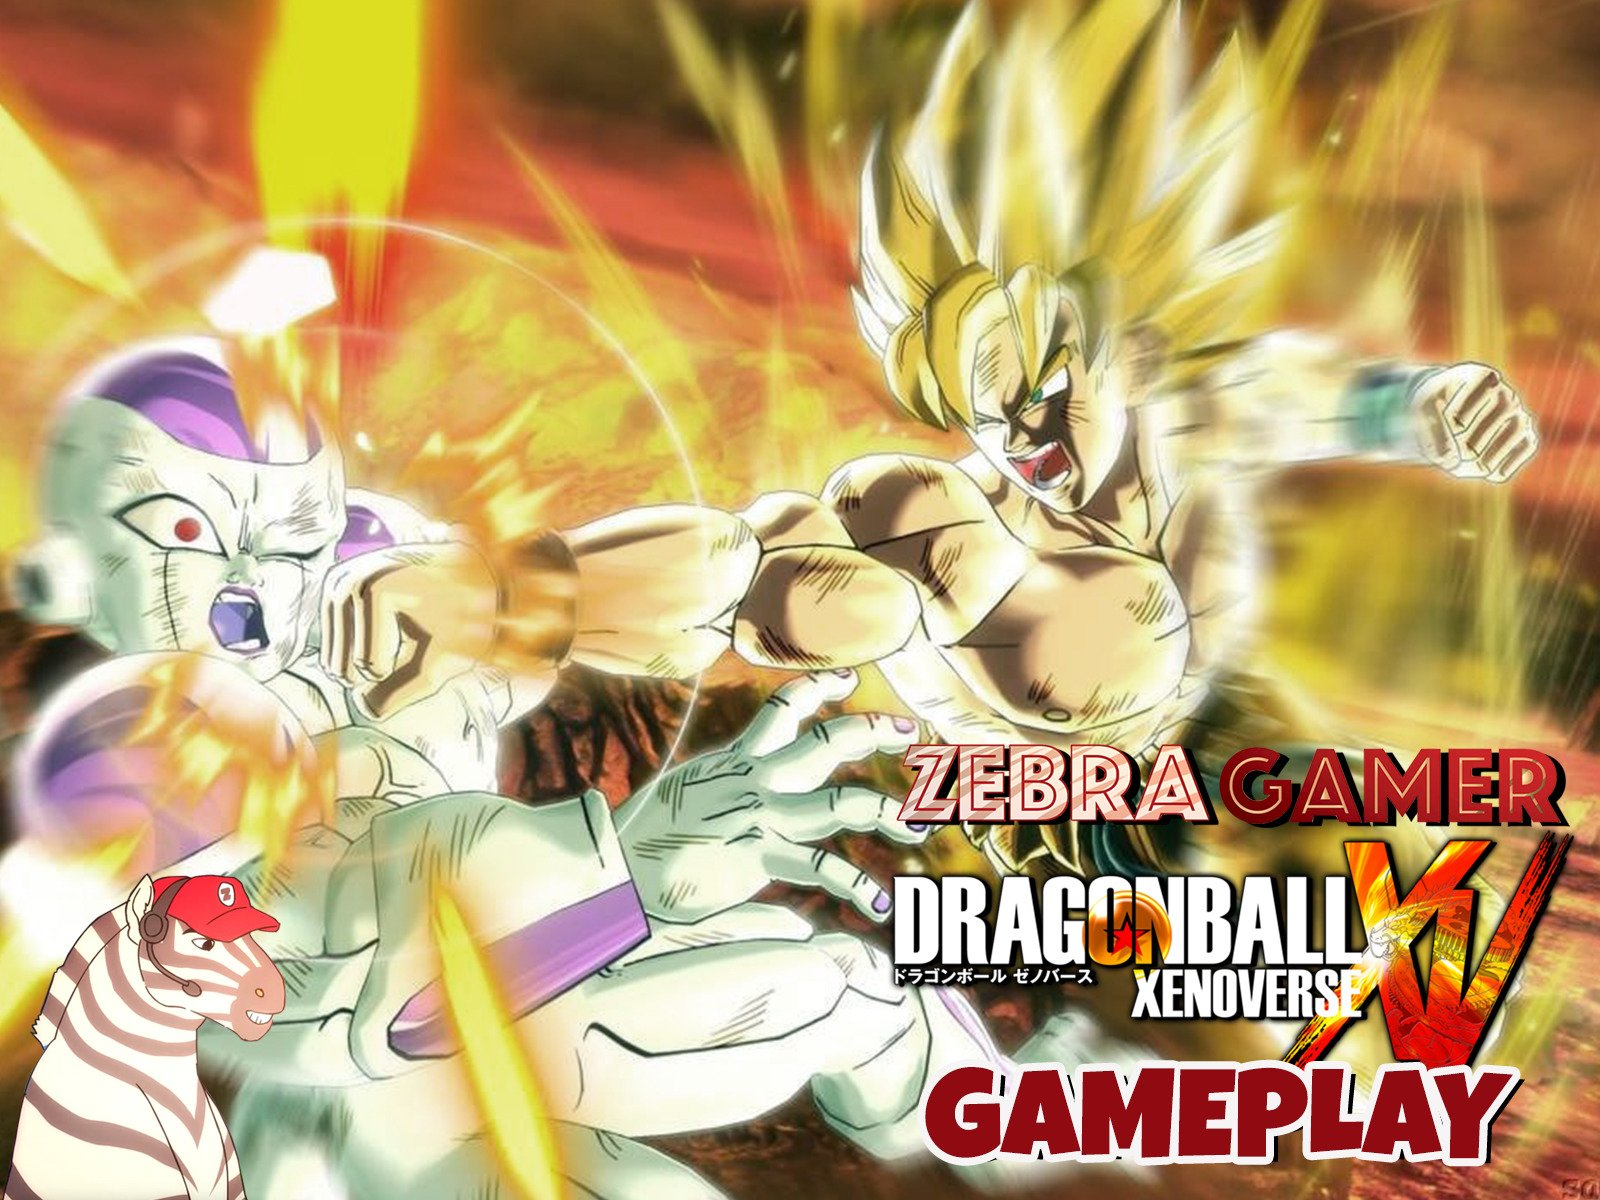 Clip: Dragon Ball Xenoverse Gameplay - Season 1